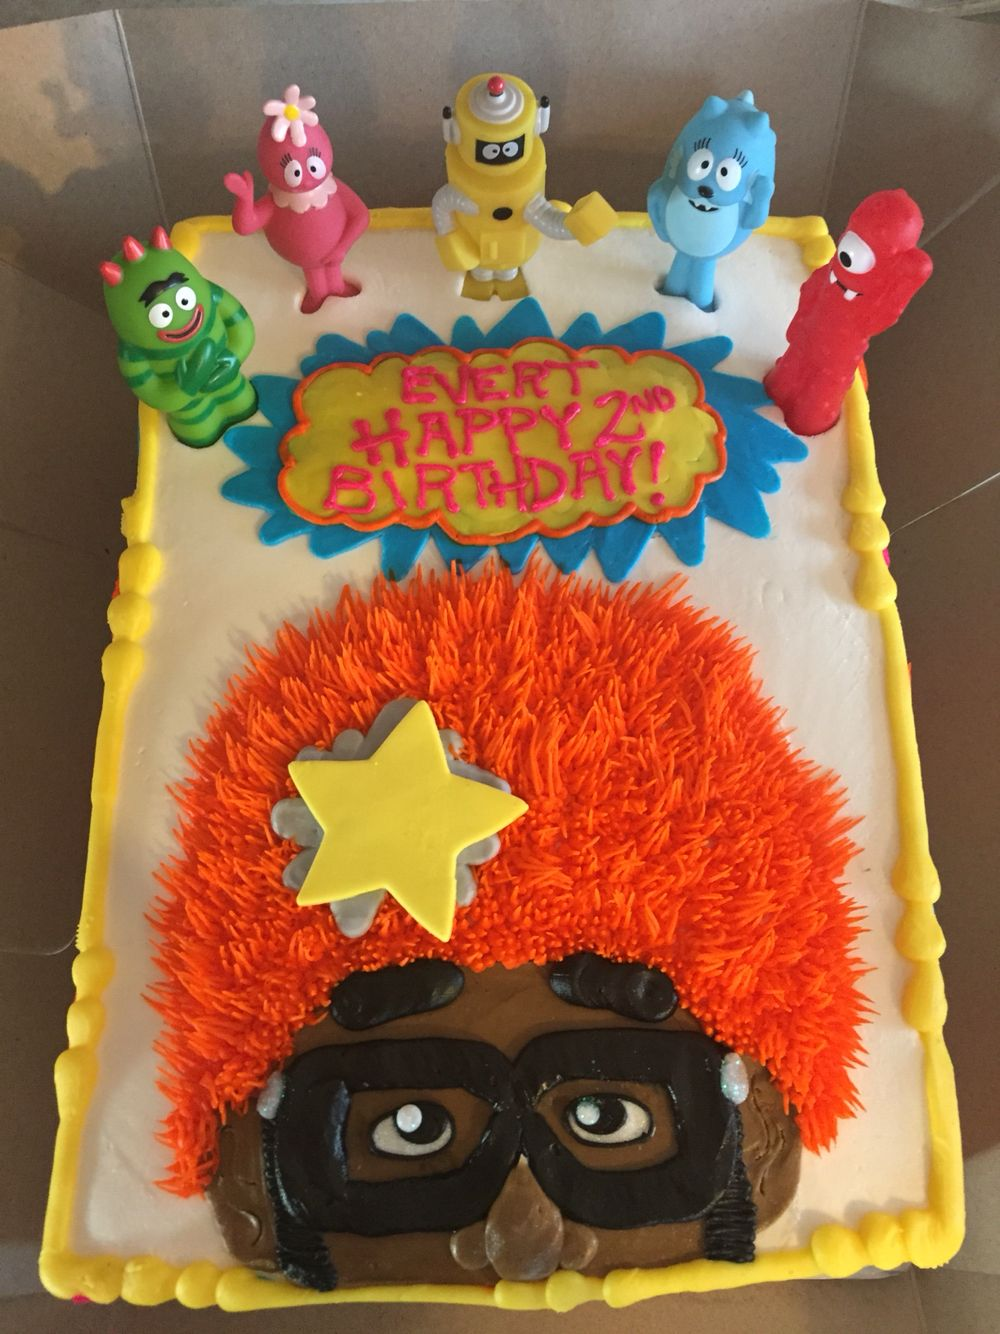 Outstanding Yo Gabba Gabba Birthday Cake Dj Lance Rock With Images Party Funny Birthday Cards Online Inifofree Goldxyz